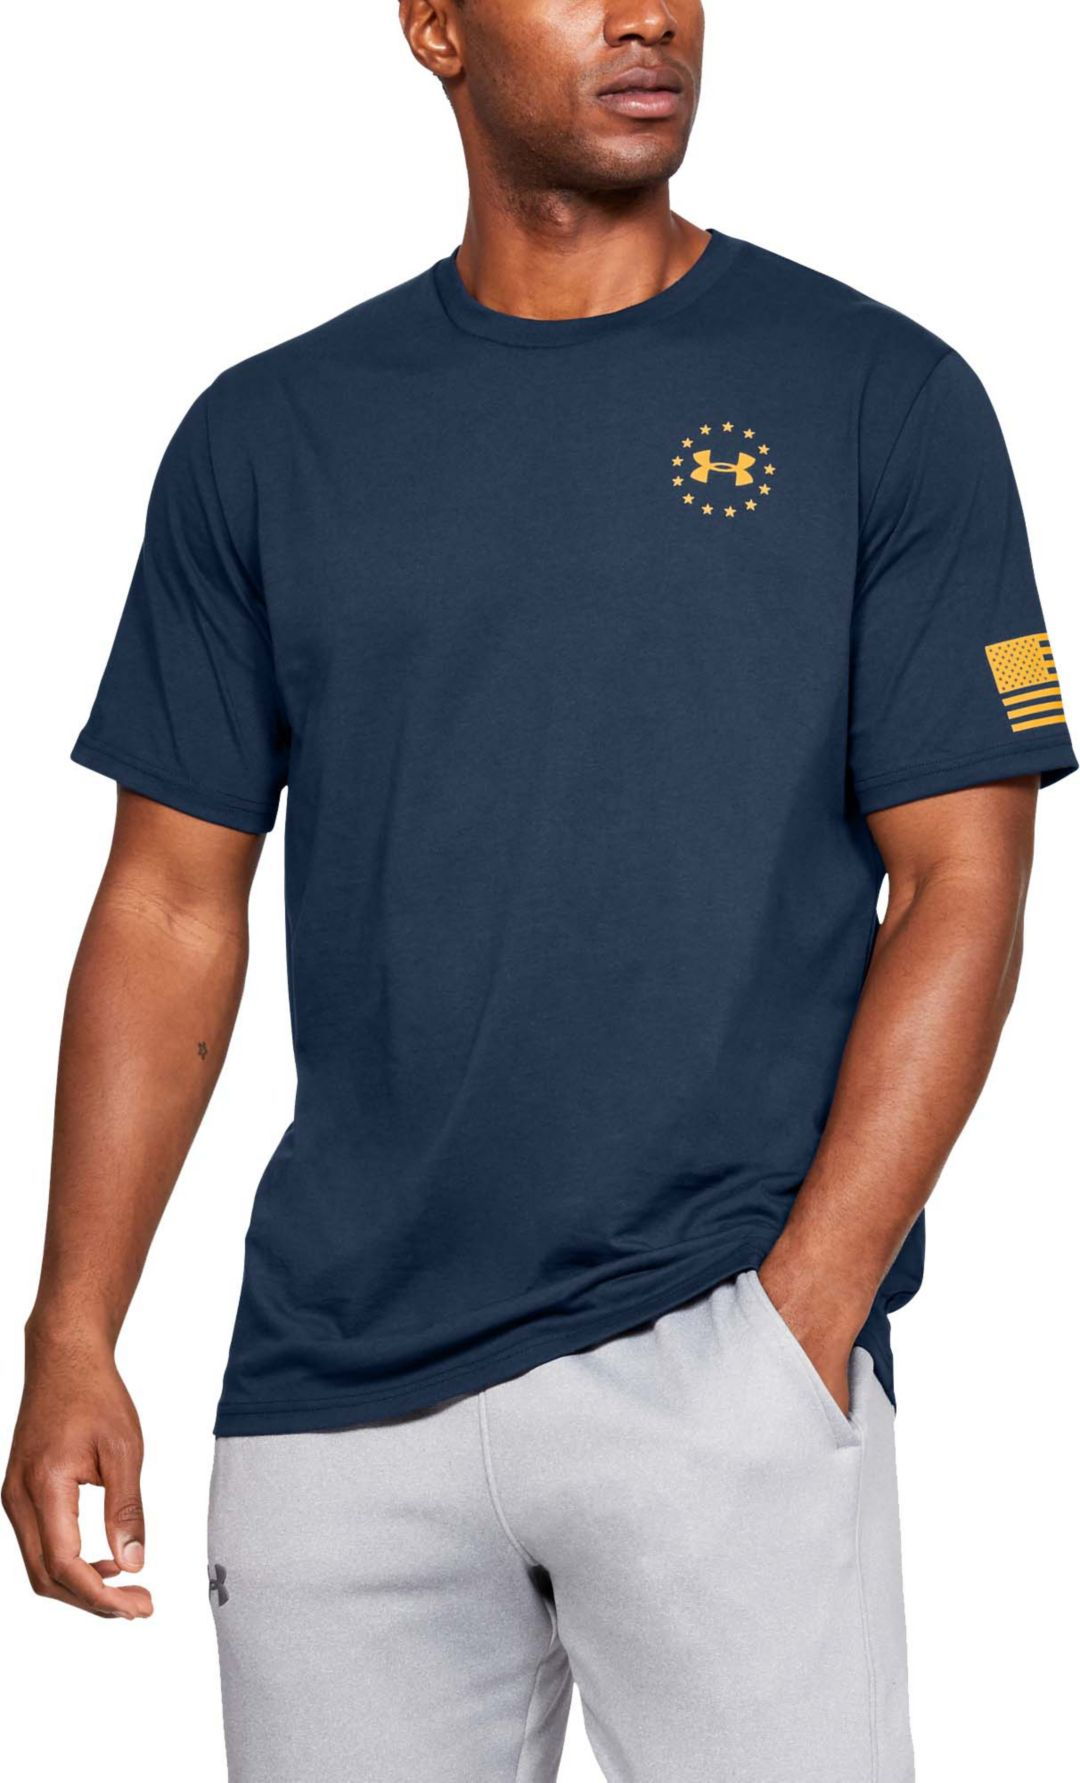 6a967f47 Under Armour Men's Freedom Flag T-Shirt